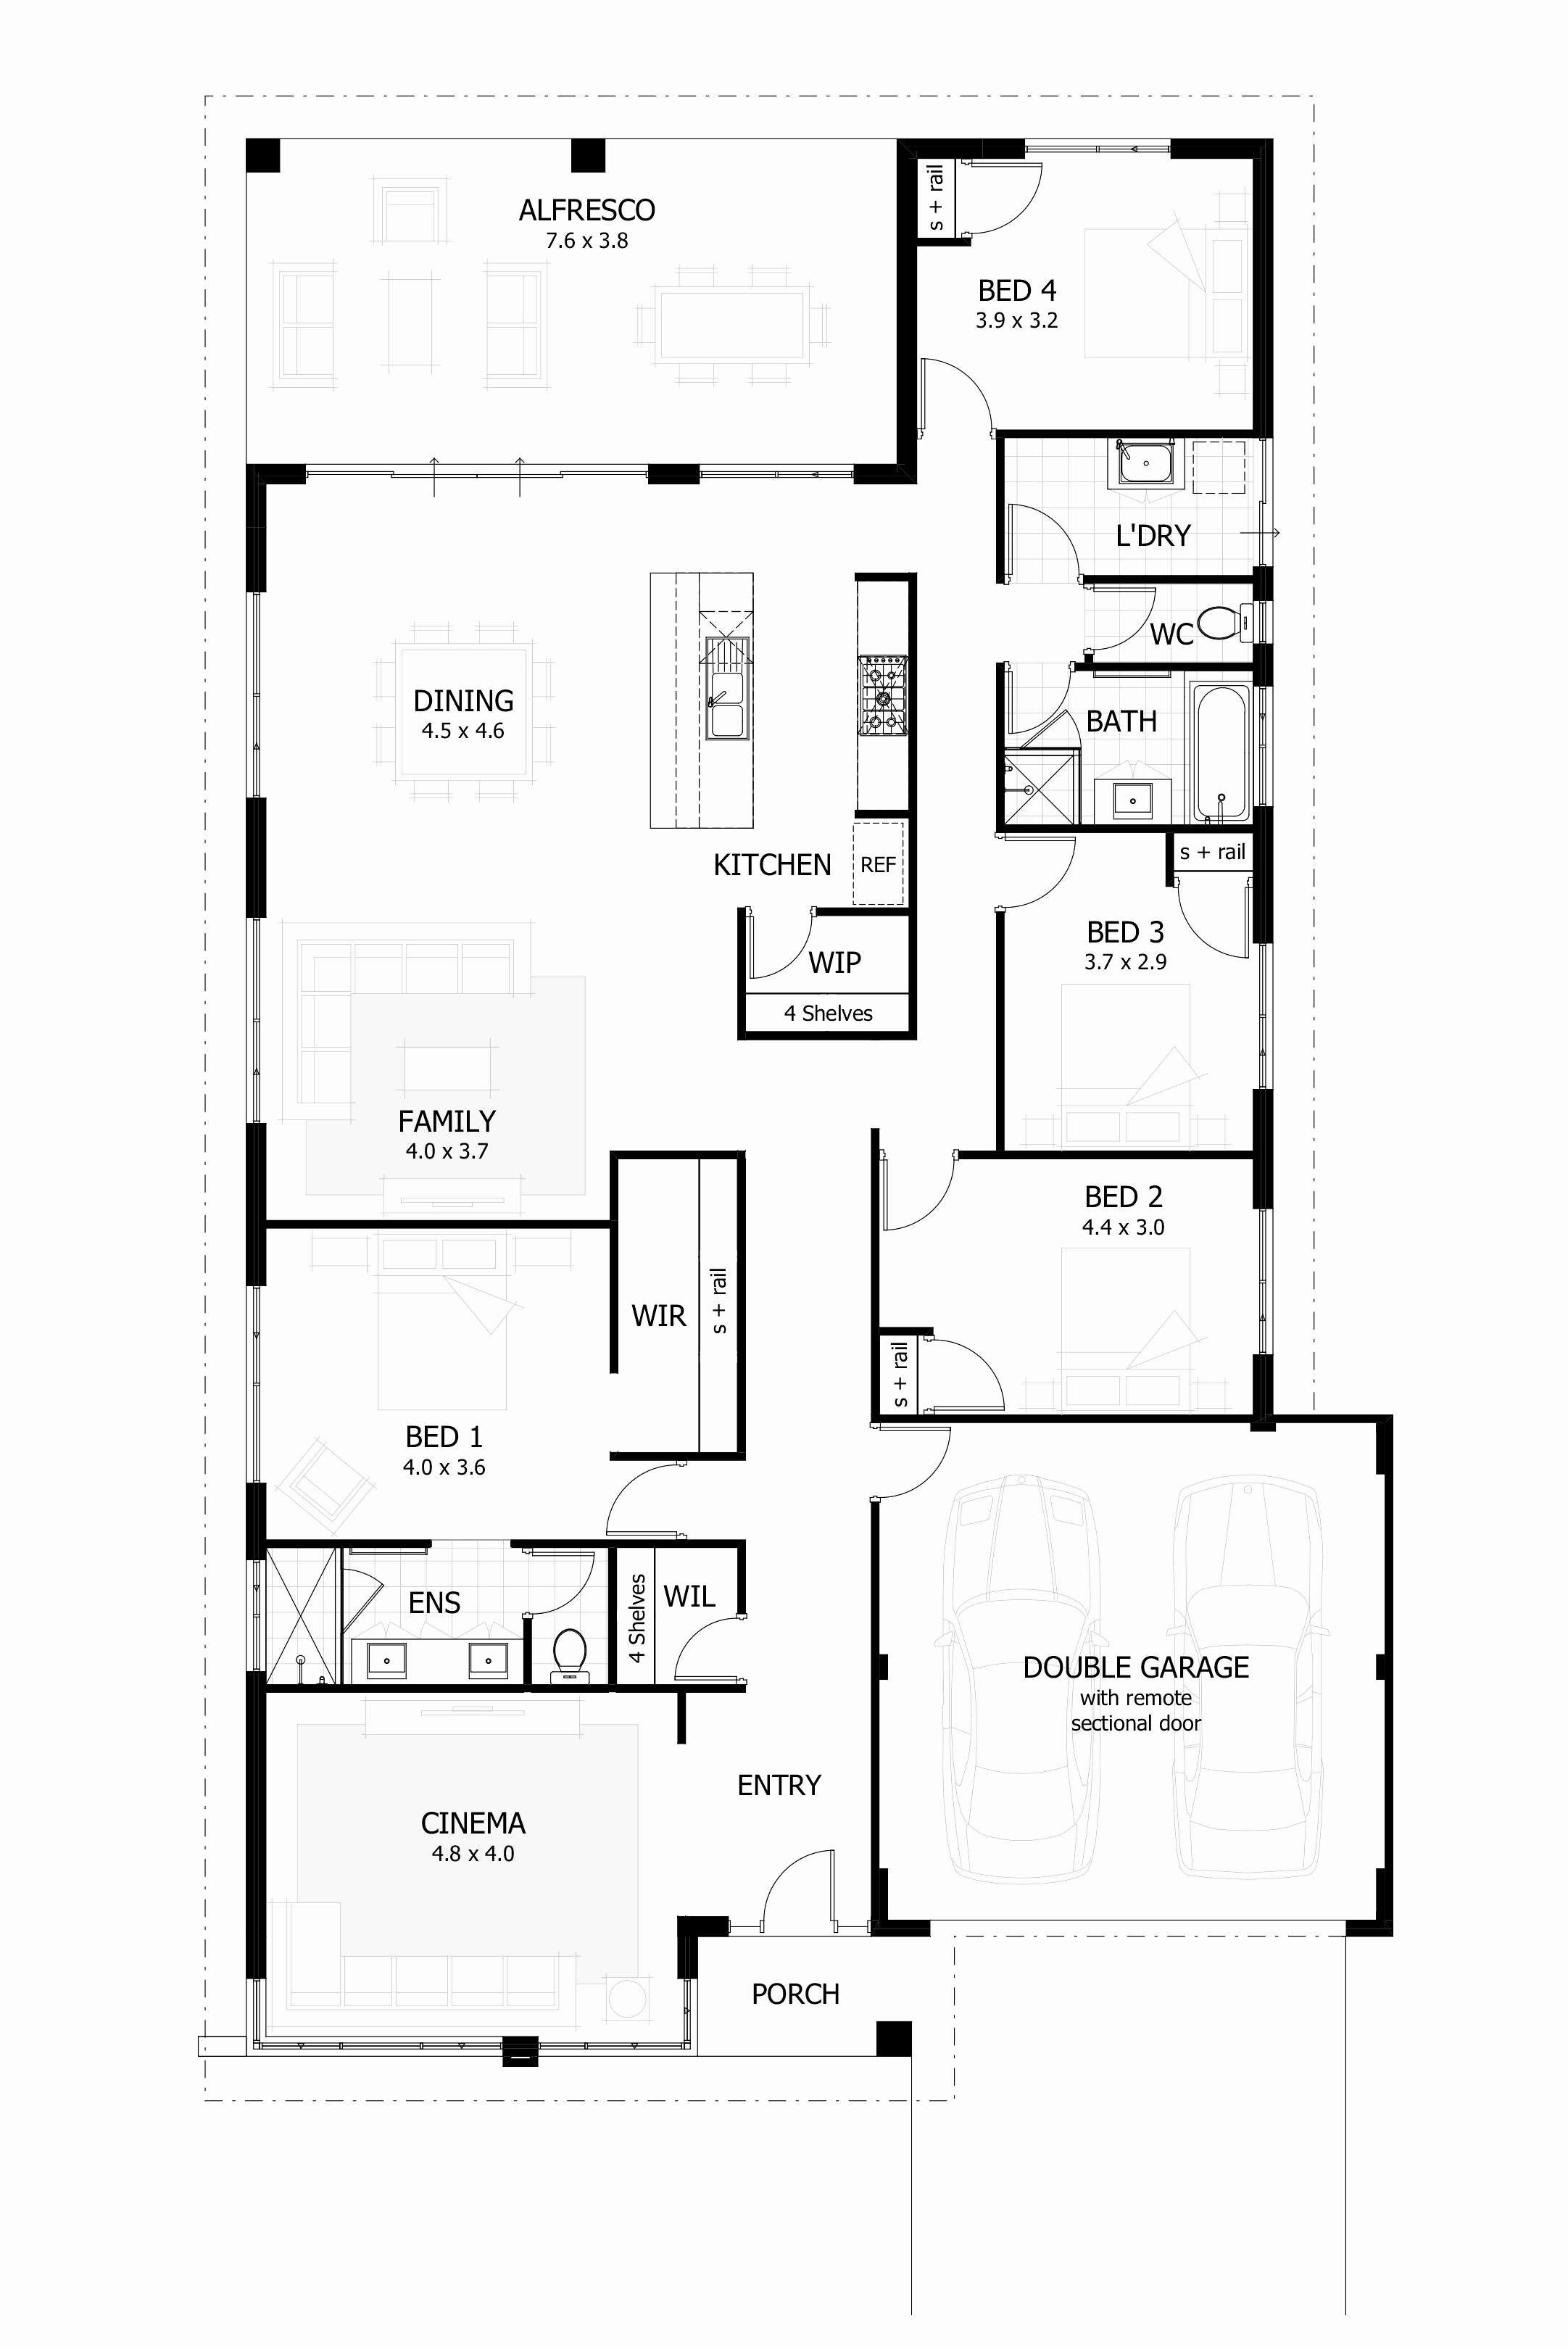 Super Modern Facade As Well As Minimal Entry Are First Thing That Orders Your Focus While You Re Home Design Floor Plans House Plans Australia Free House Plans